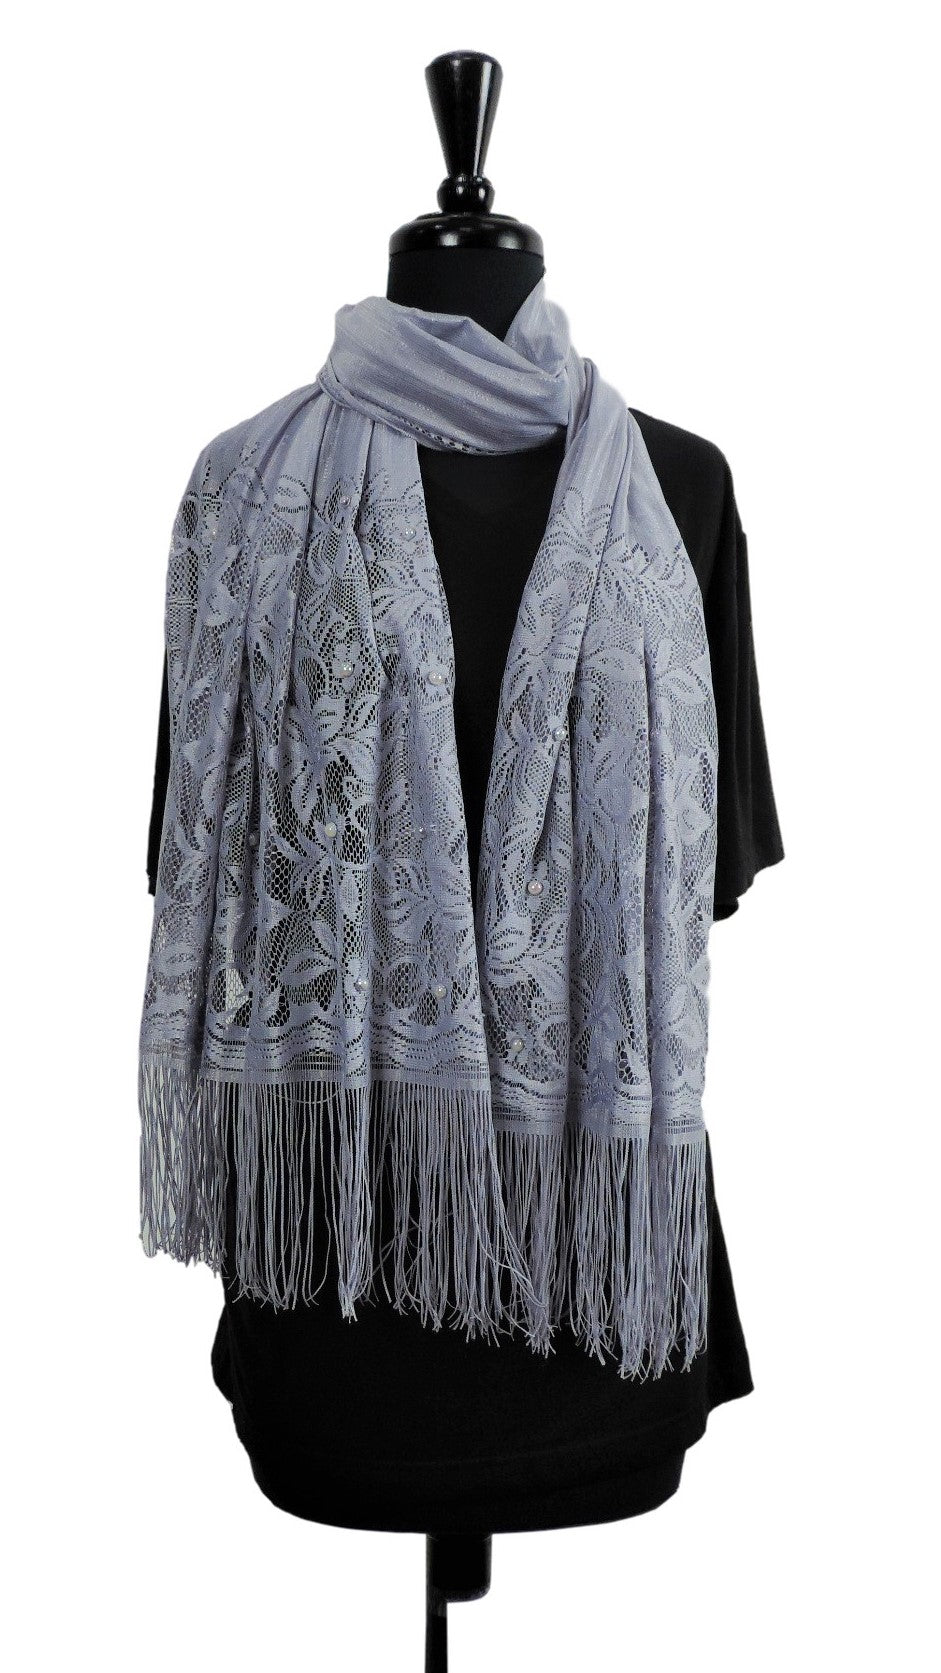 Handmade Light Grey Net Scarf - Global Trendz Fashion®